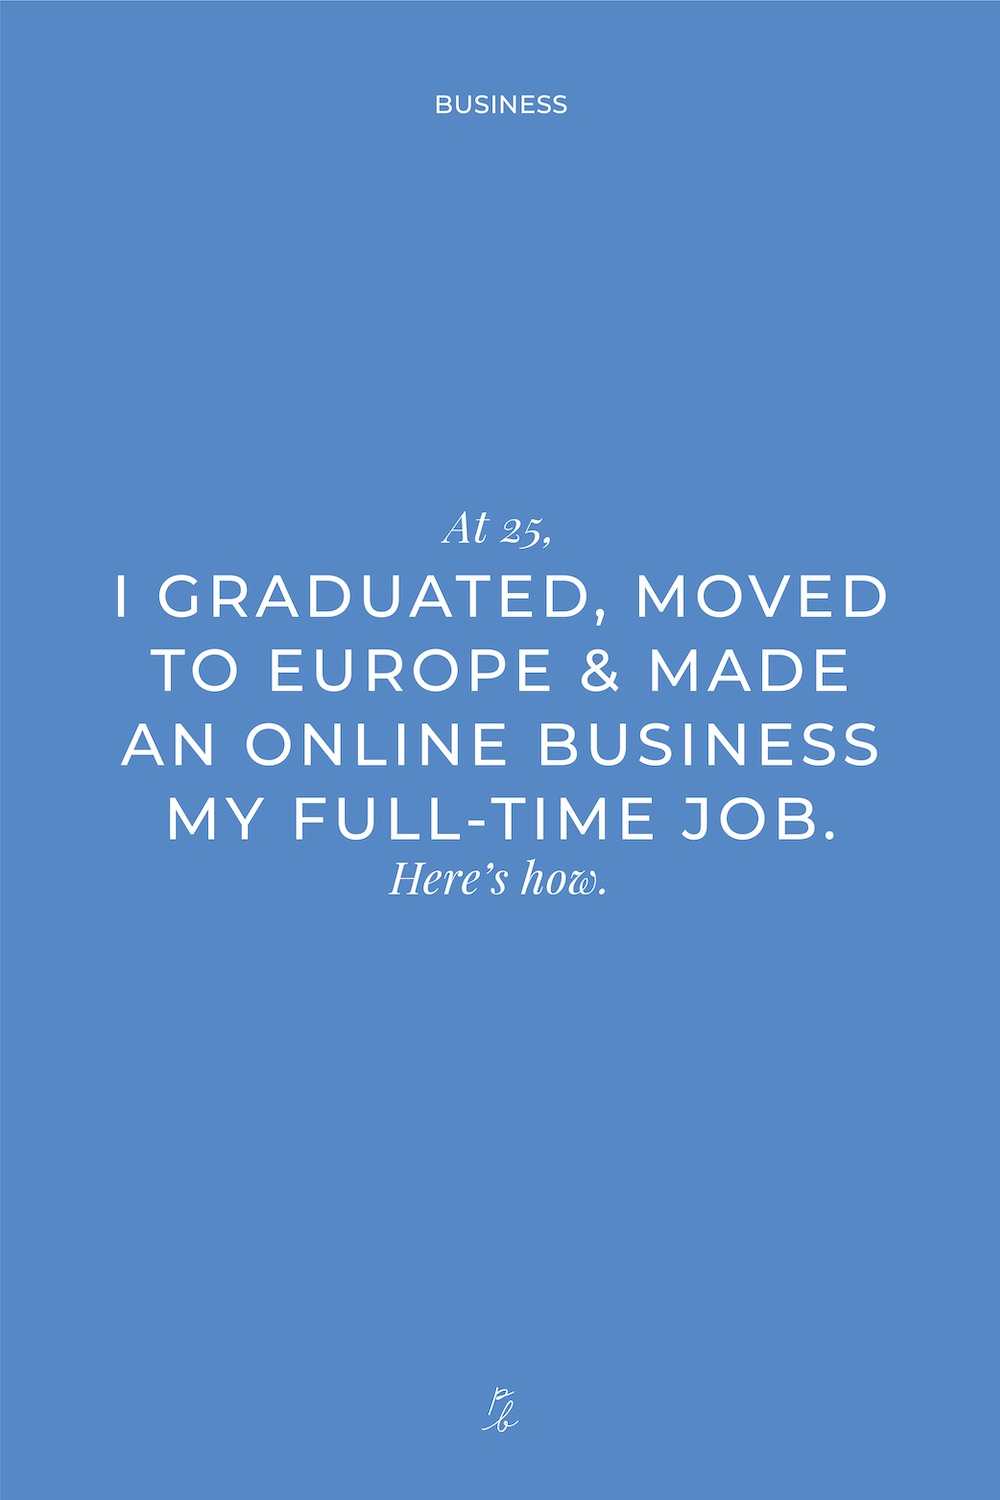 3-At 25, I GRADUATED, MOVED TO EUROPE & MADE AN ONLINE BUSINESS MY FULL-TIME JOB. Here's how.     .jpg